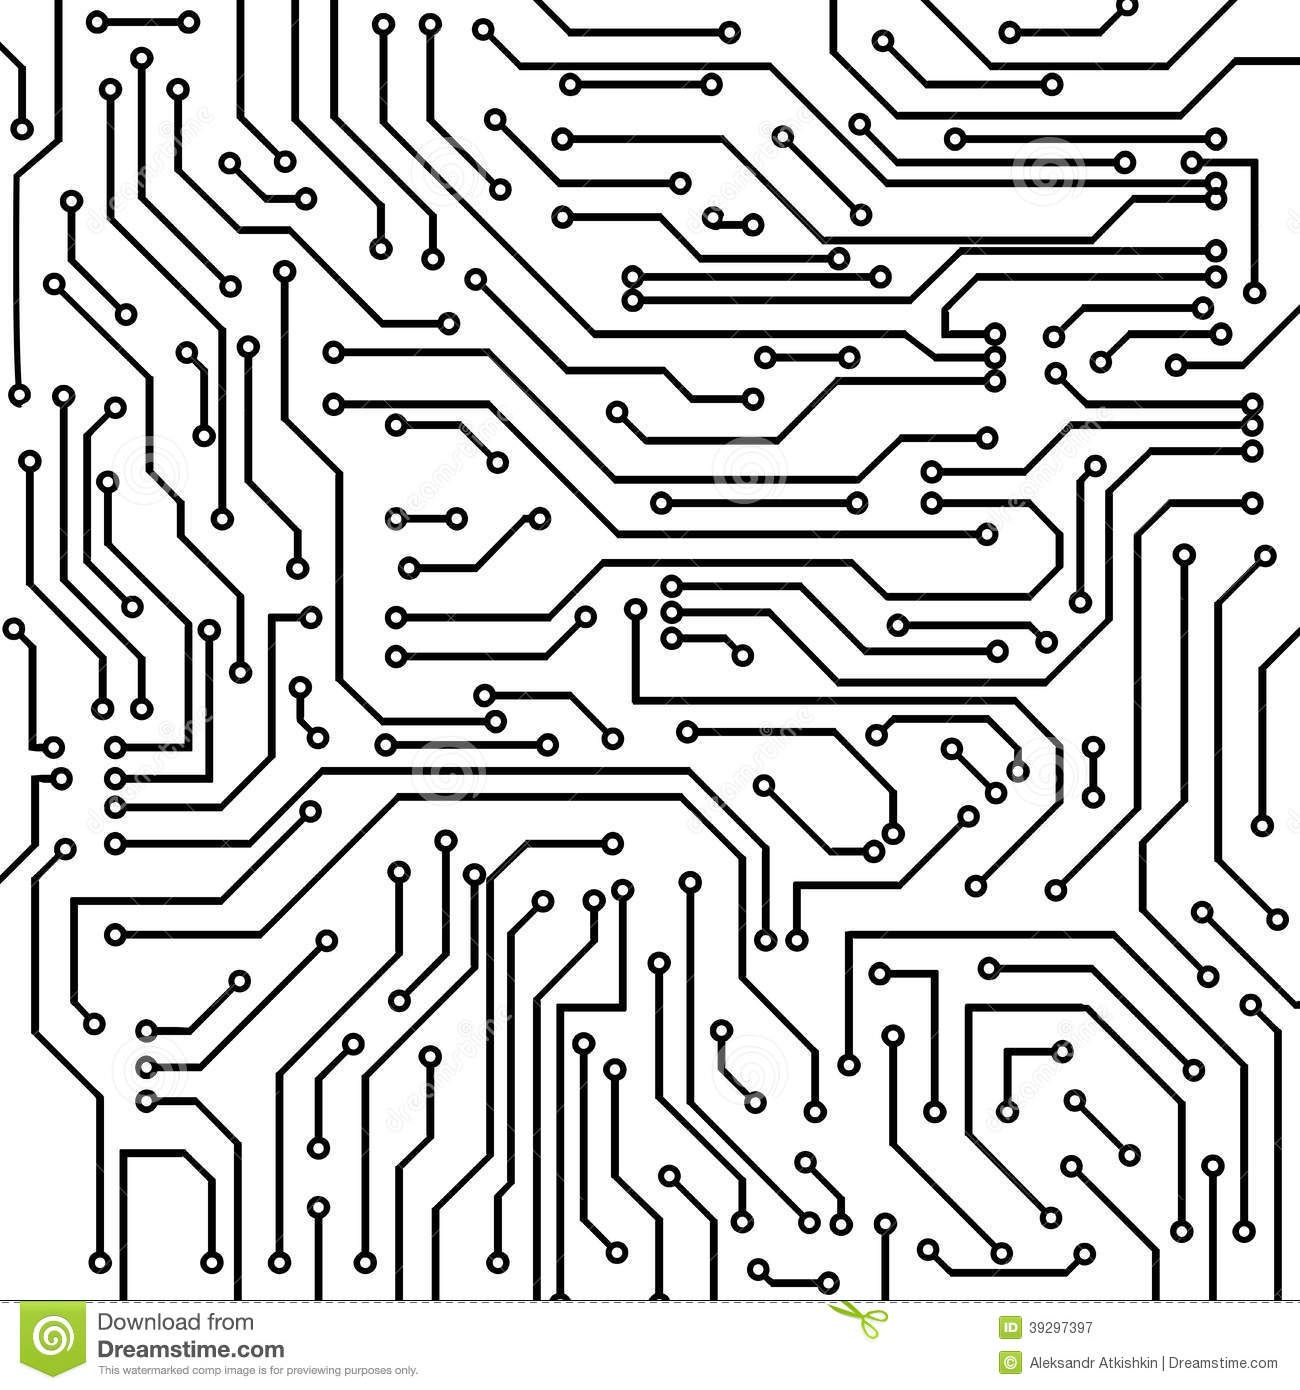 hight resolution of computer chip graphic google search circuit board design computer chip systems engineering